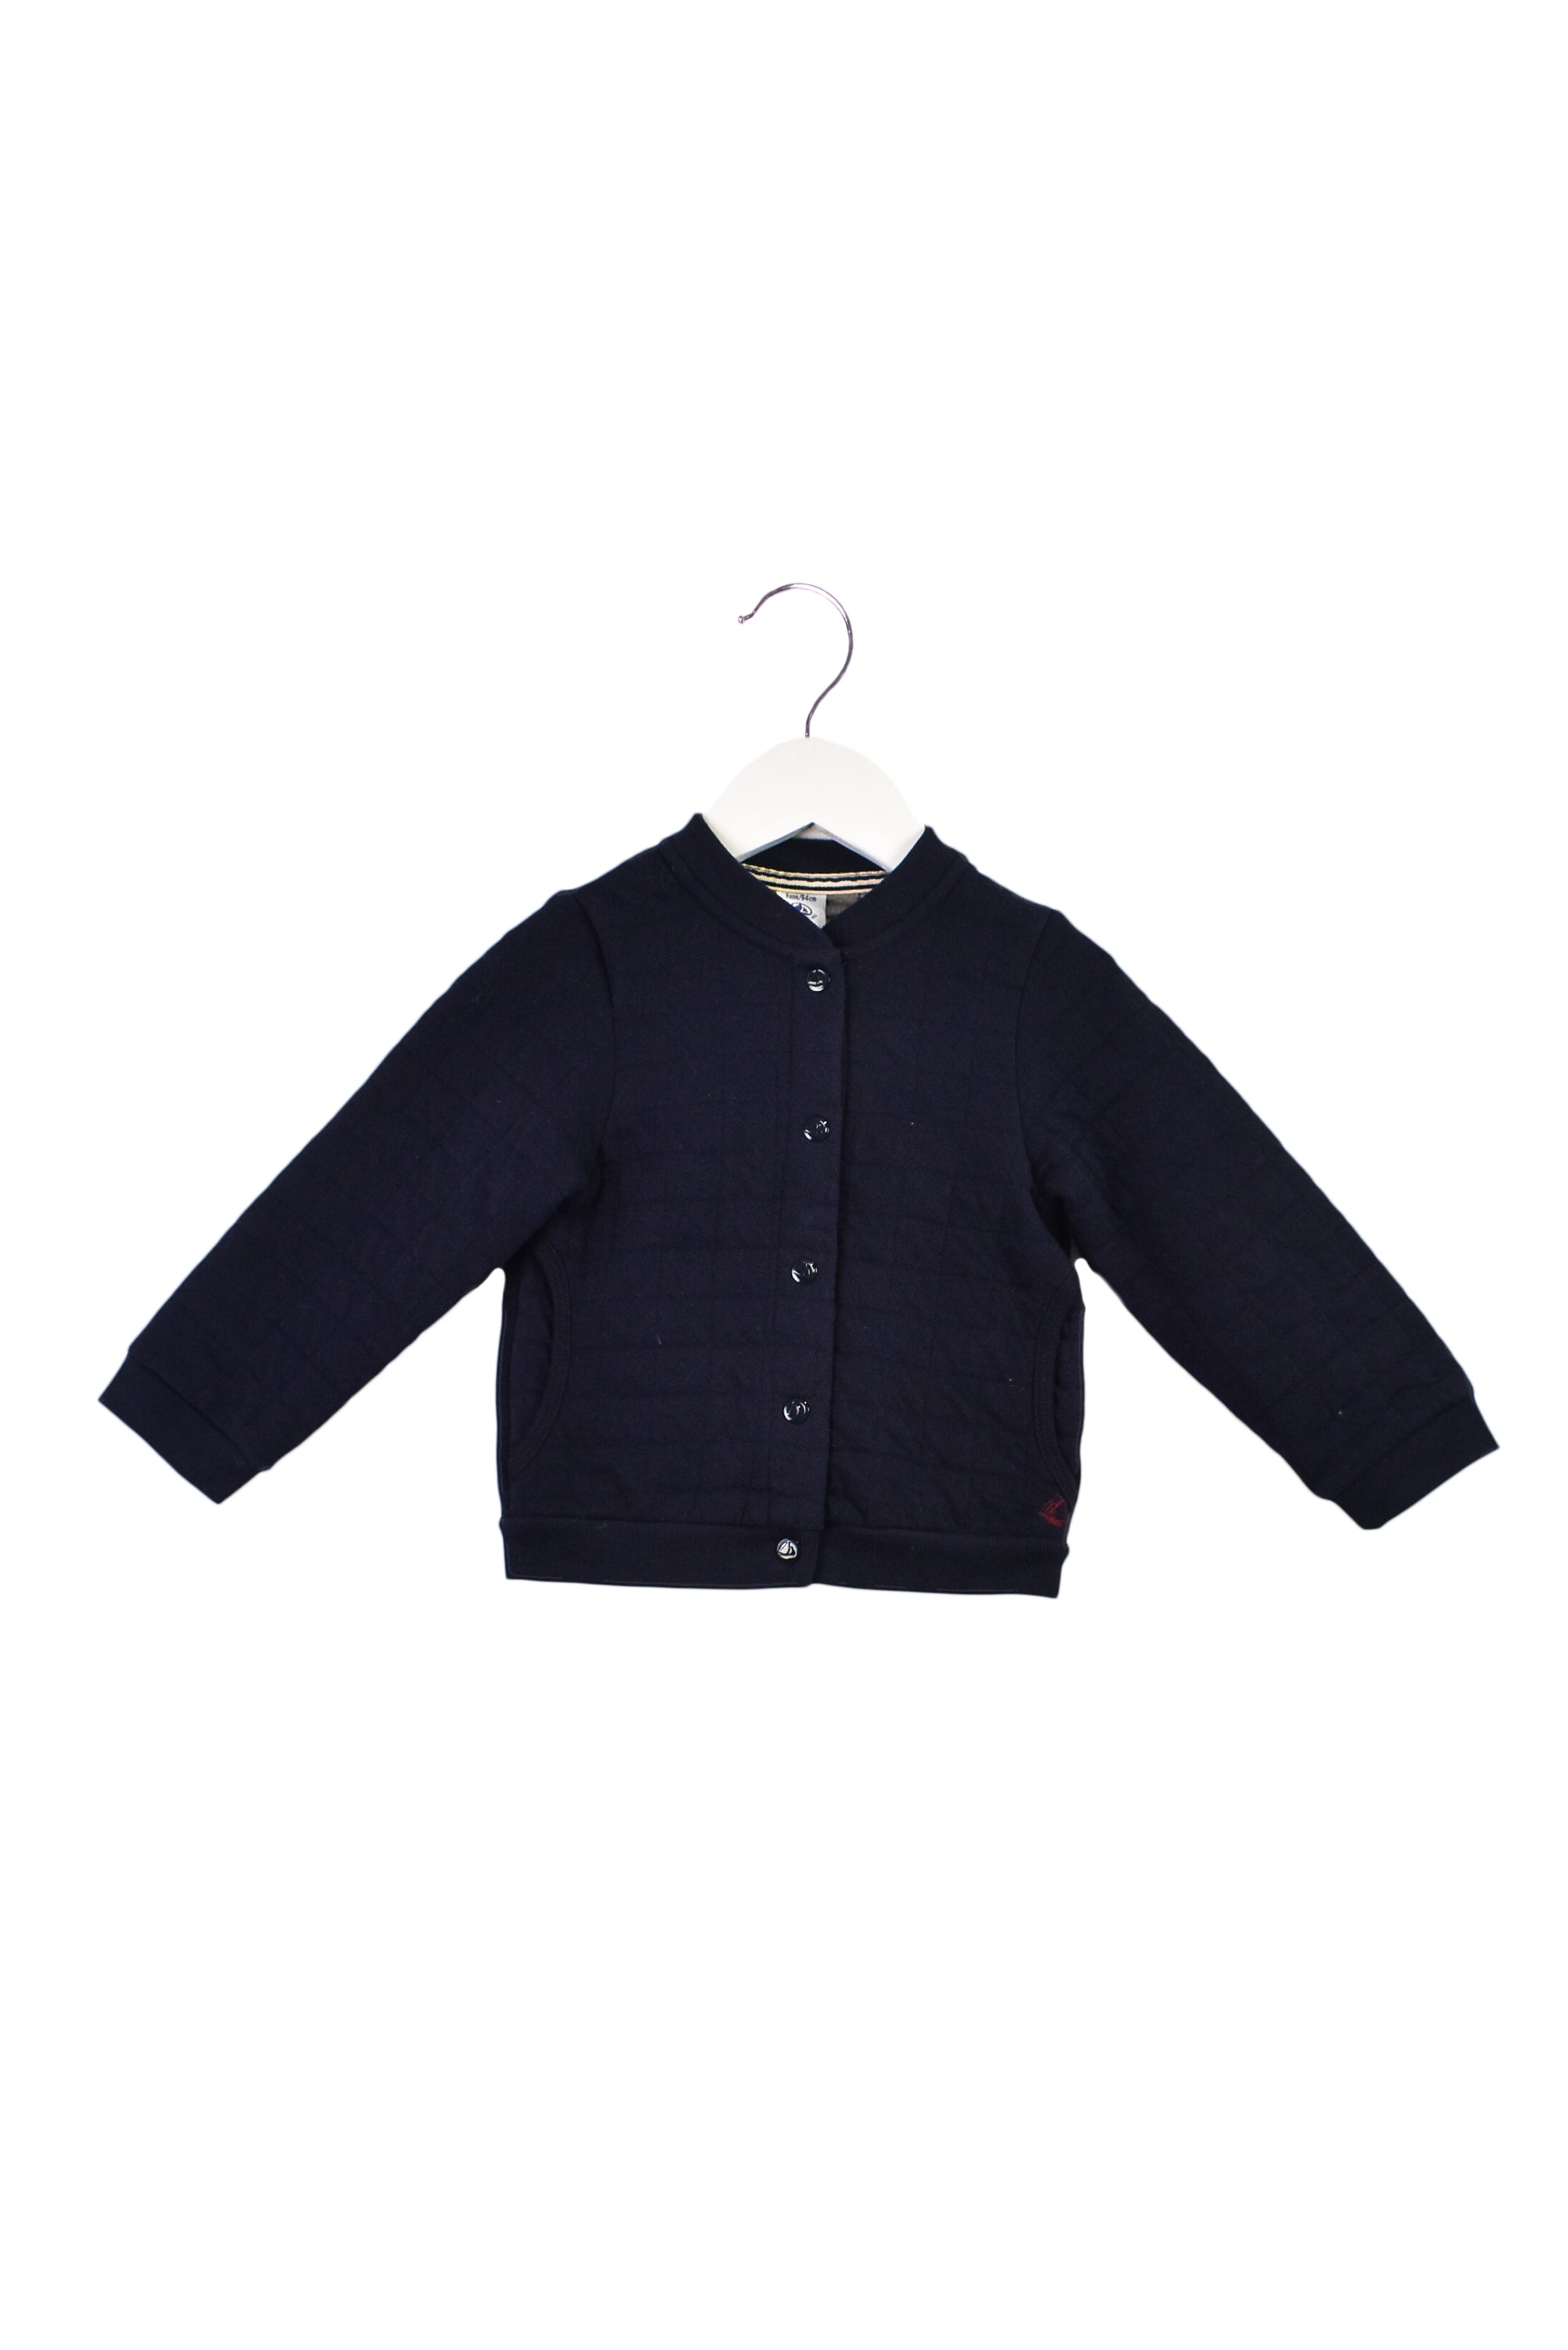 10031156 Petit Bateau Kids~Jacket 3T at Retykle